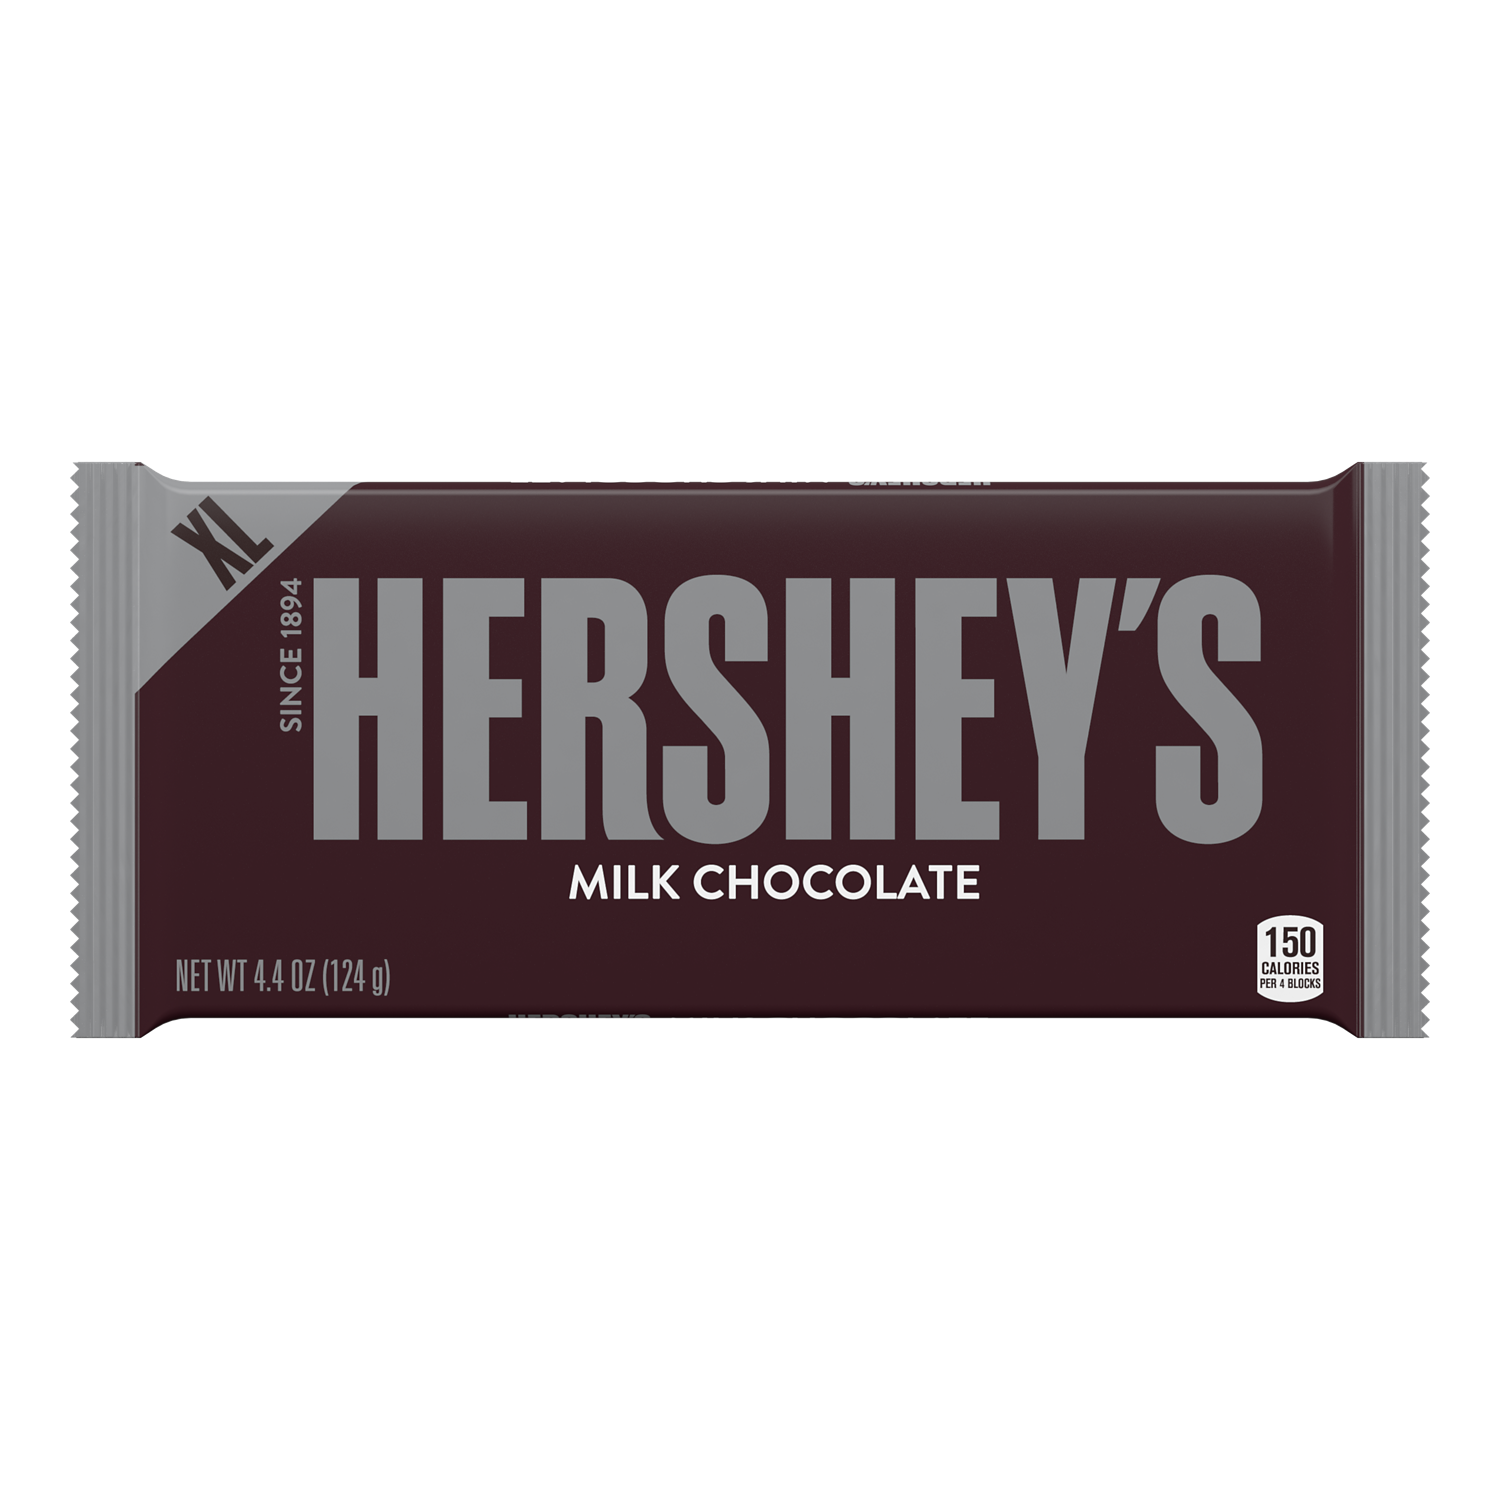 HERSHEY'S Milk Chocolate XL Candy Bar, 4.4 oz - Front of Package